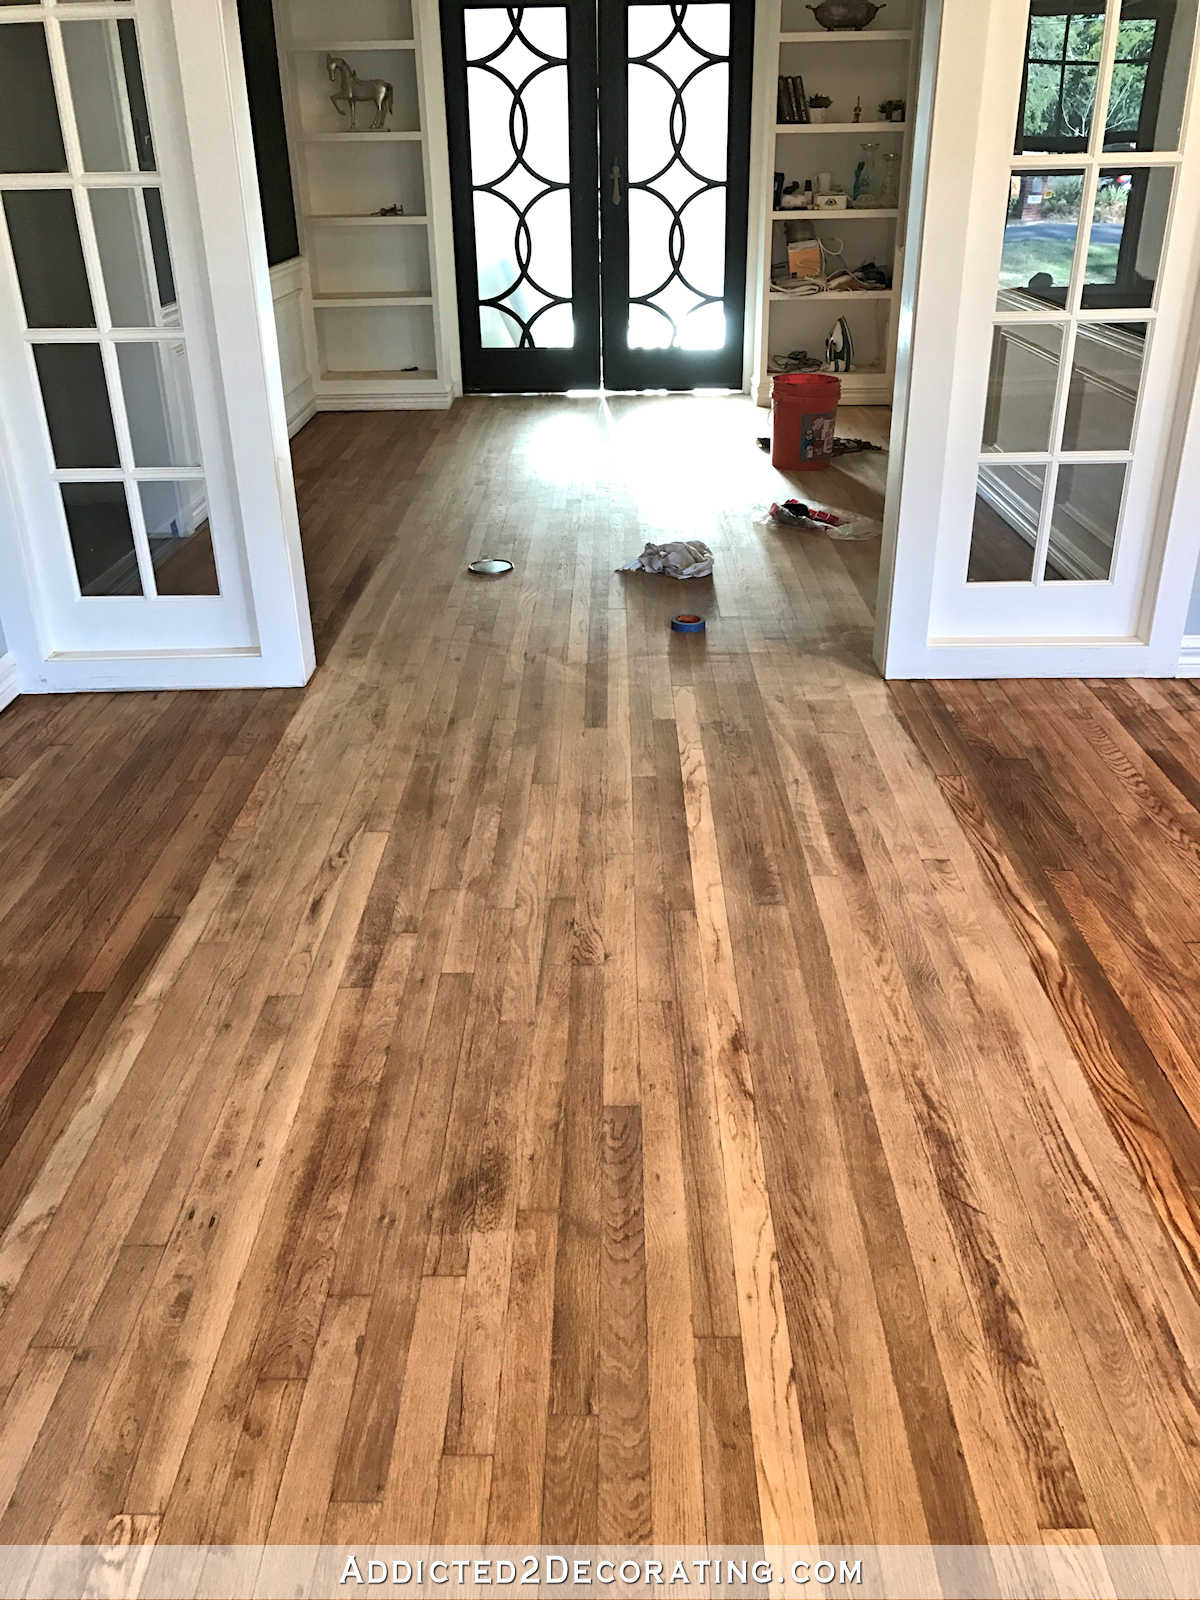 2 1 4 hardwood flooring of adventures in staining my red oak hardwood floors products process with staining red oak hardwood floors 5 music room wood conditioner